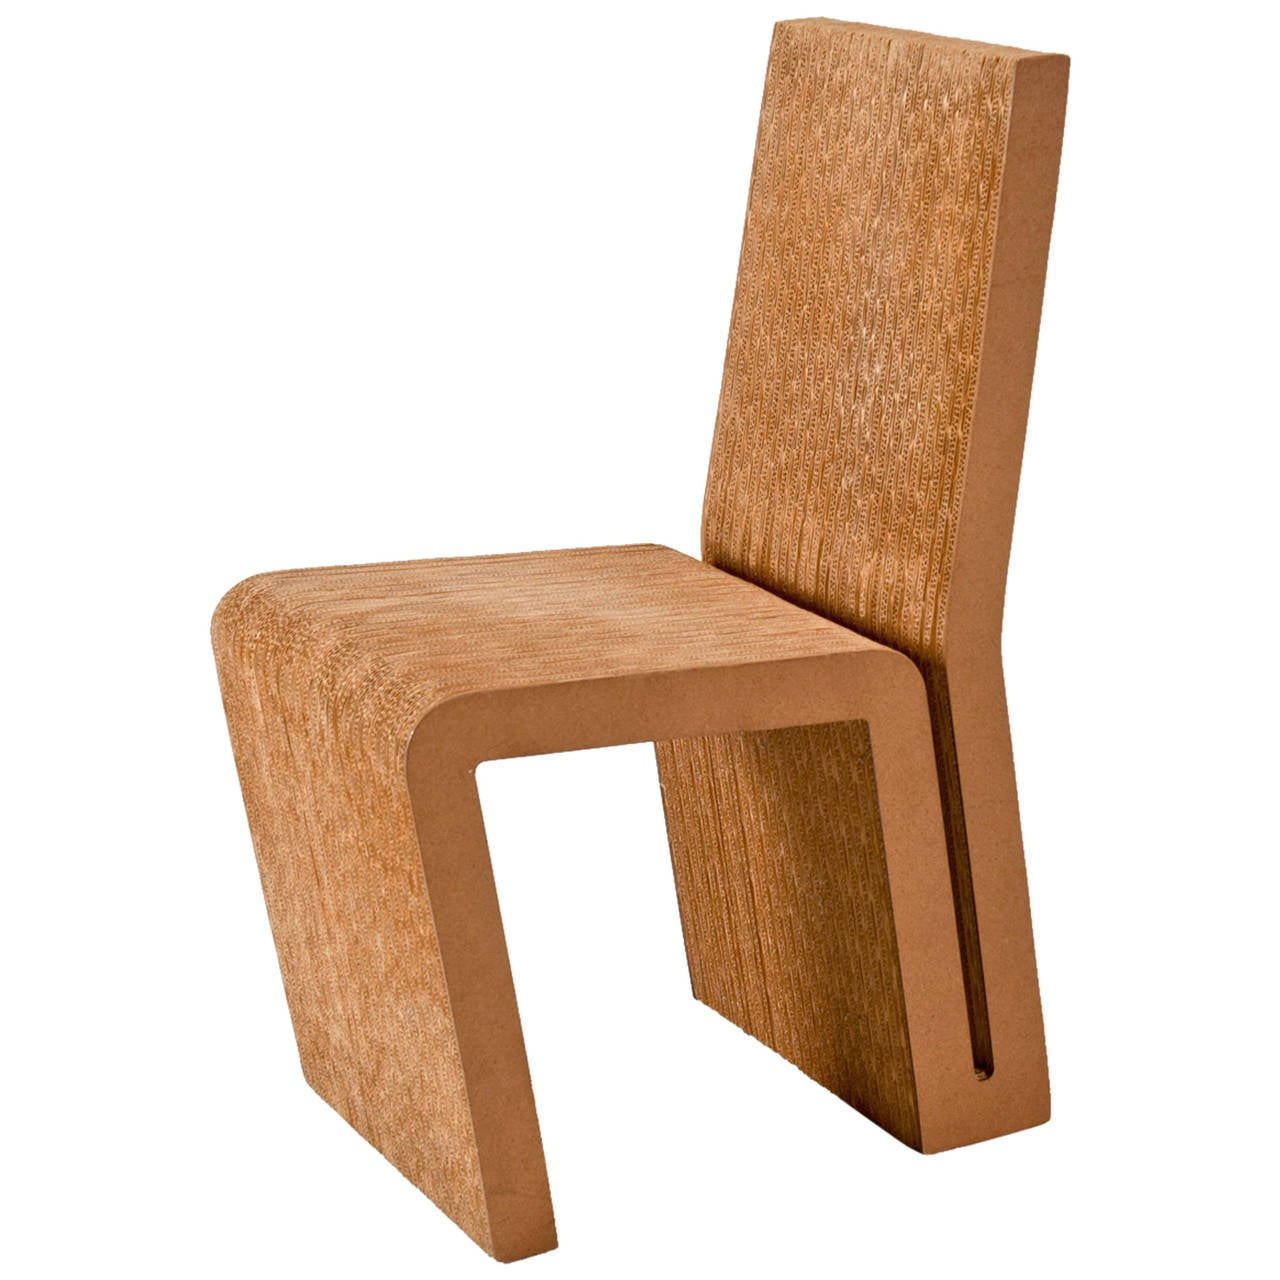 Frank Gehry Side Chair In Cardboard For Vitra Edition For Sale At